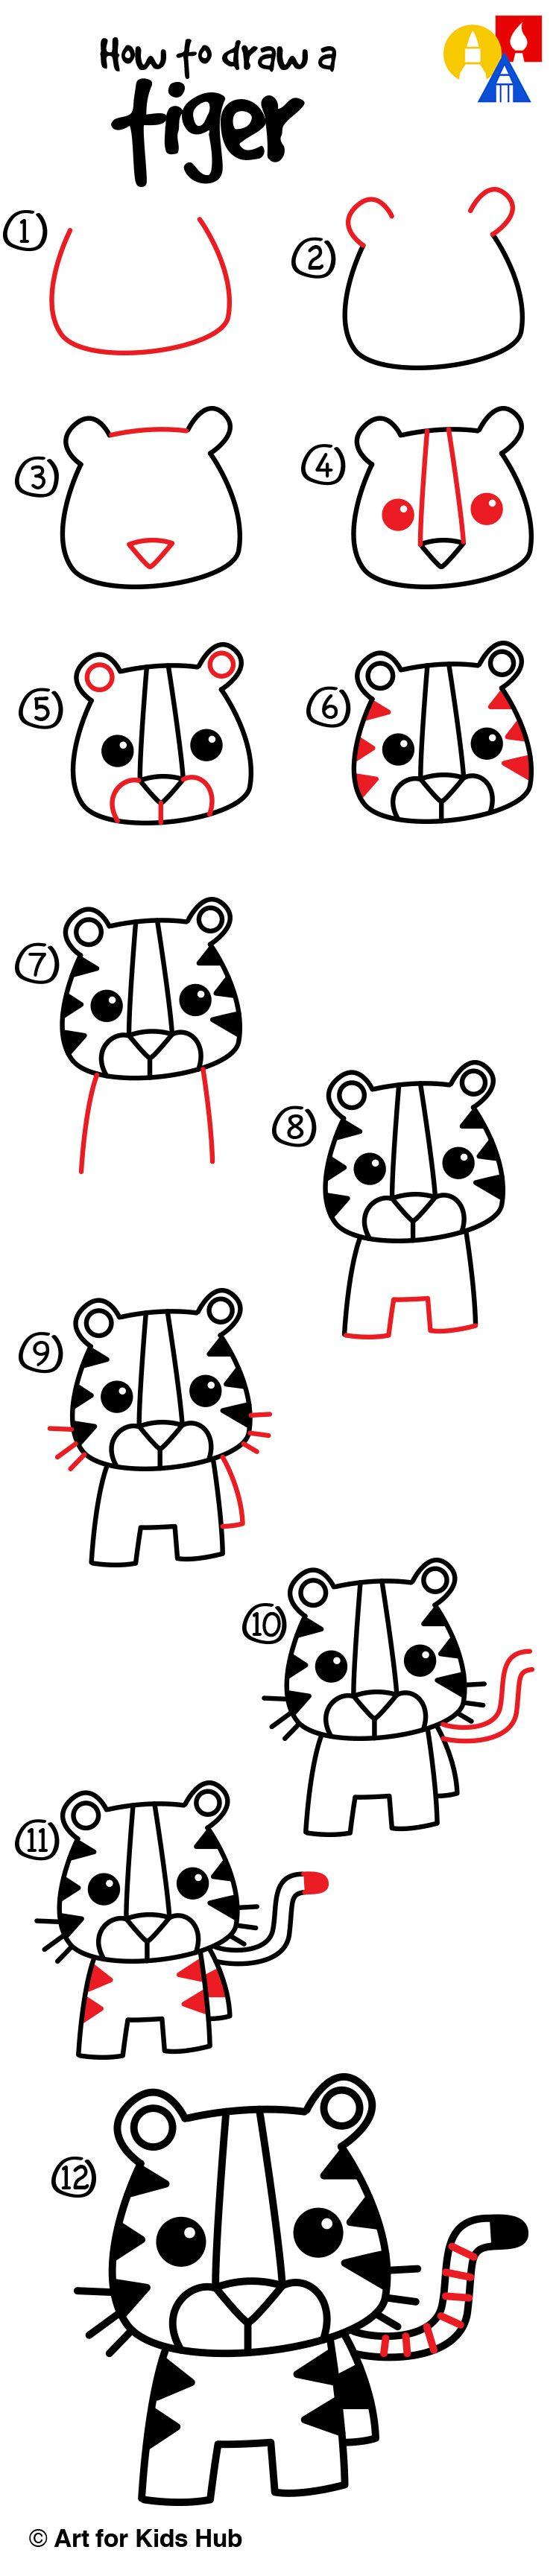 How To Draw A Cartoon Tiger Just For Kids